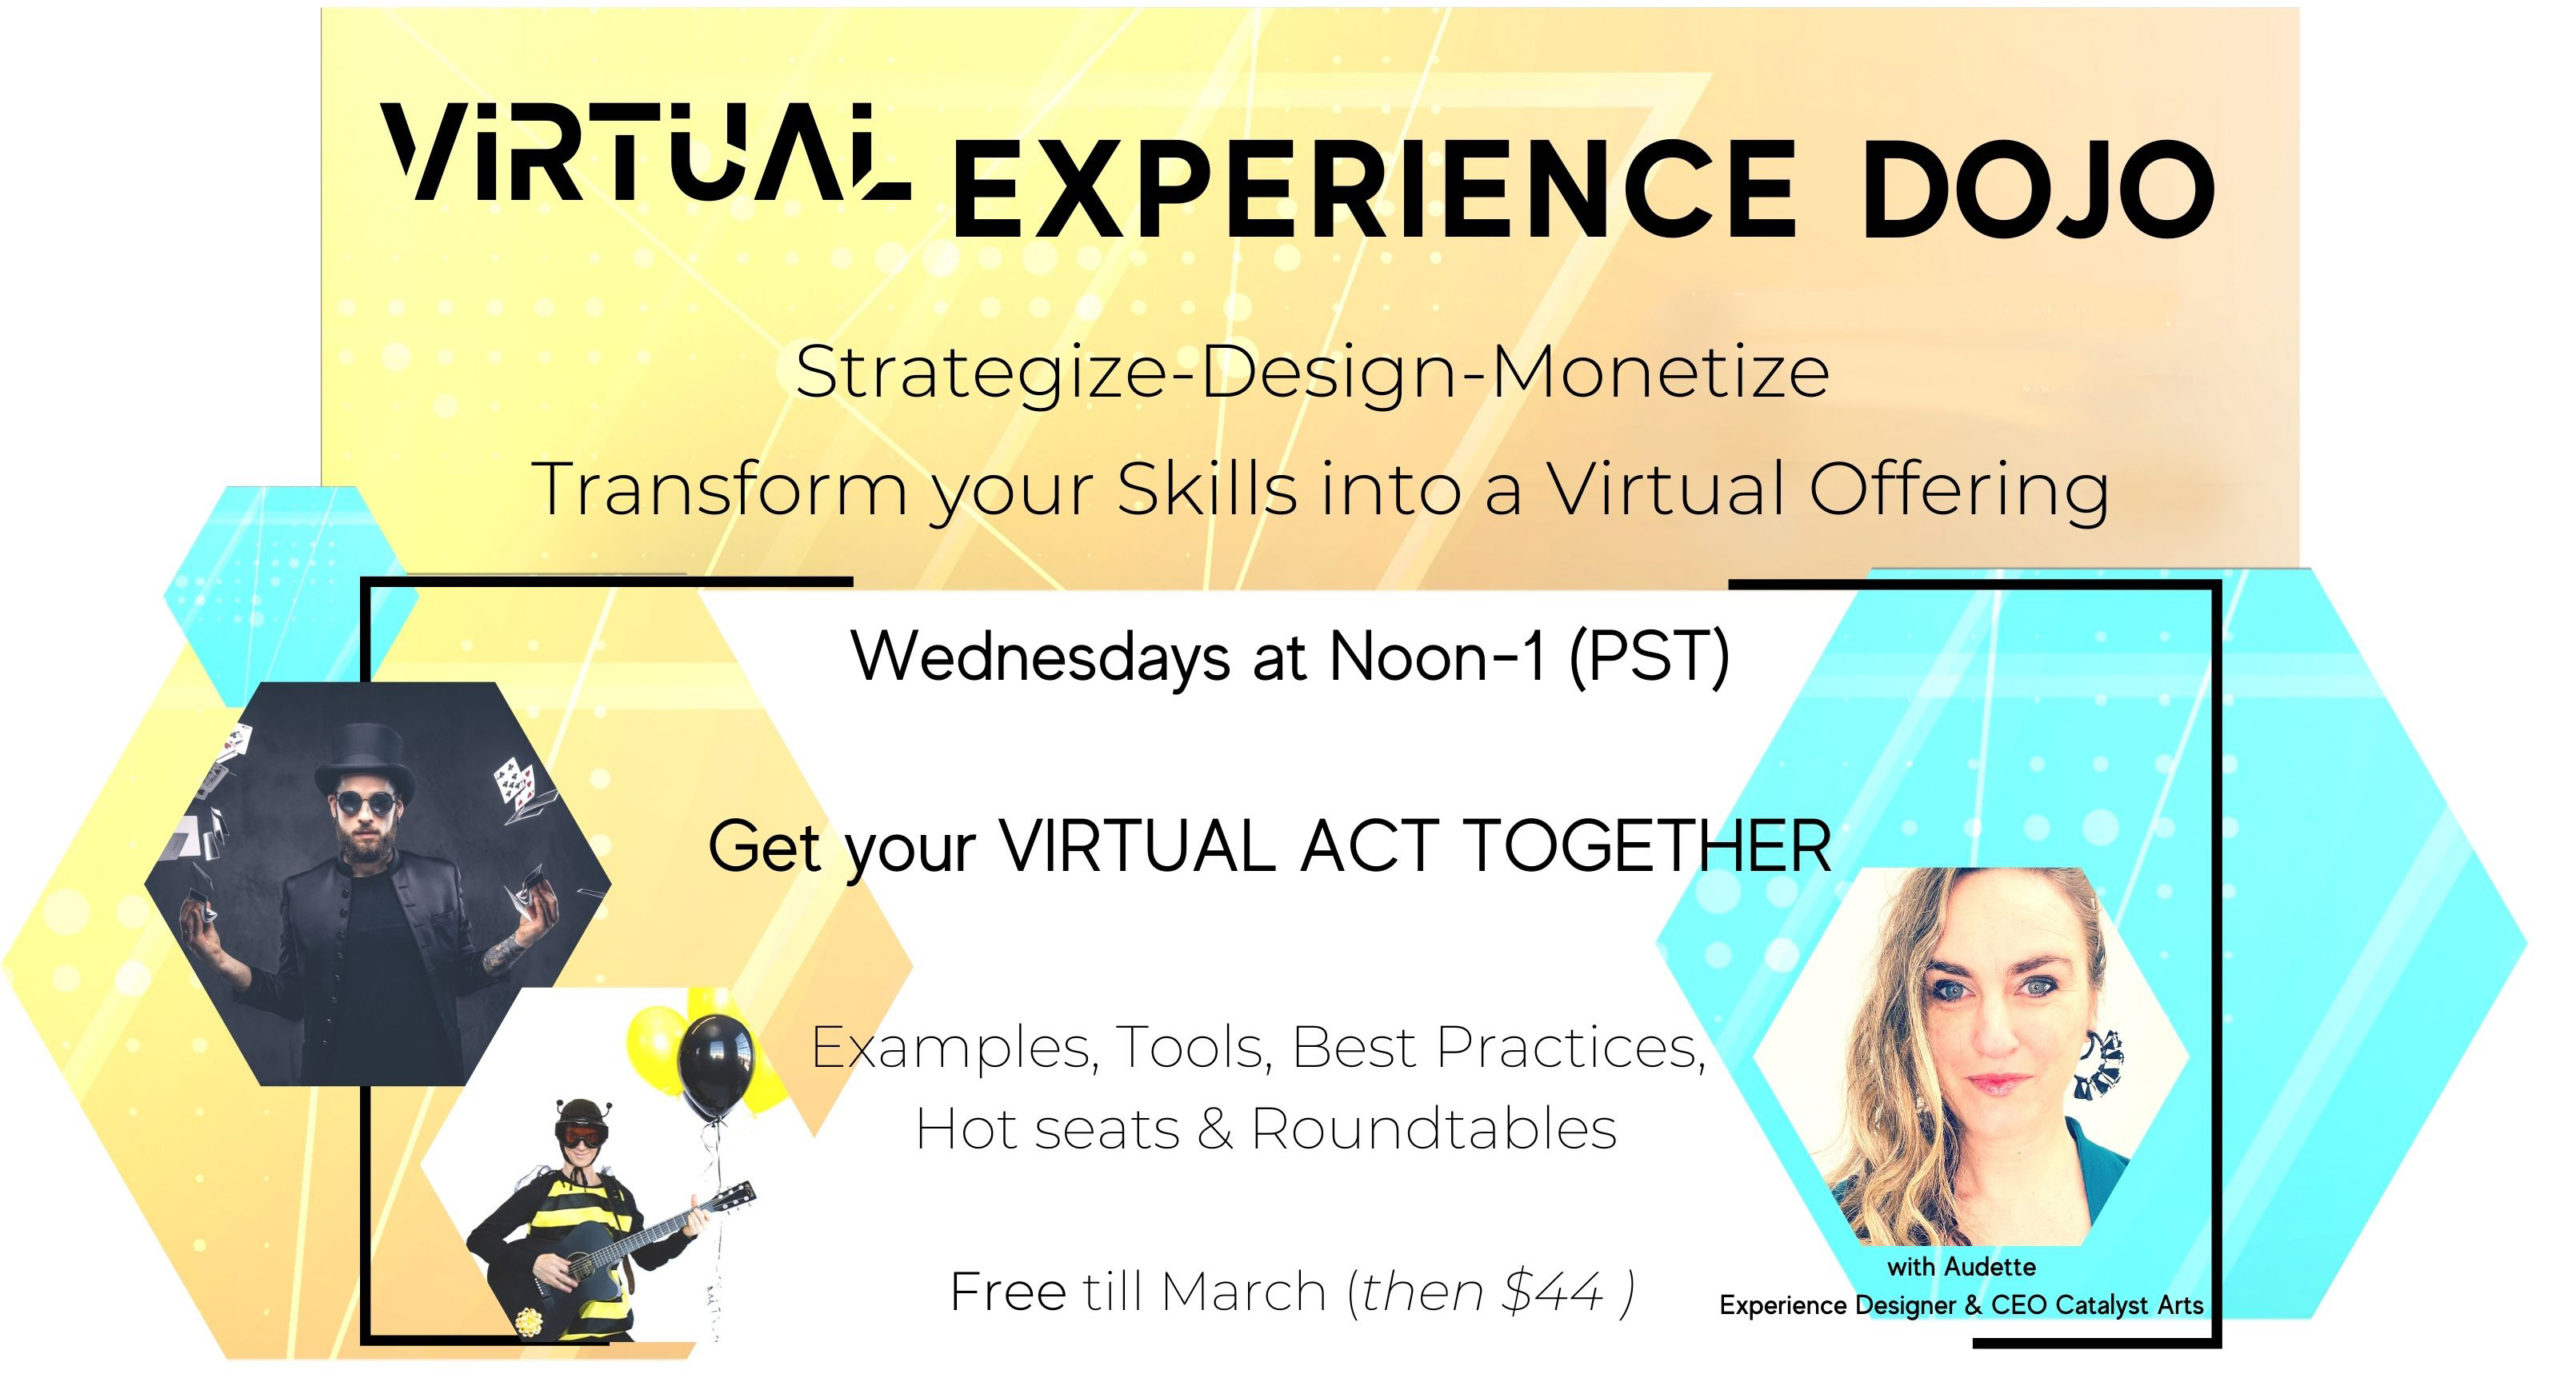 Virtual Experience Dojo with Audette for virtual talent development